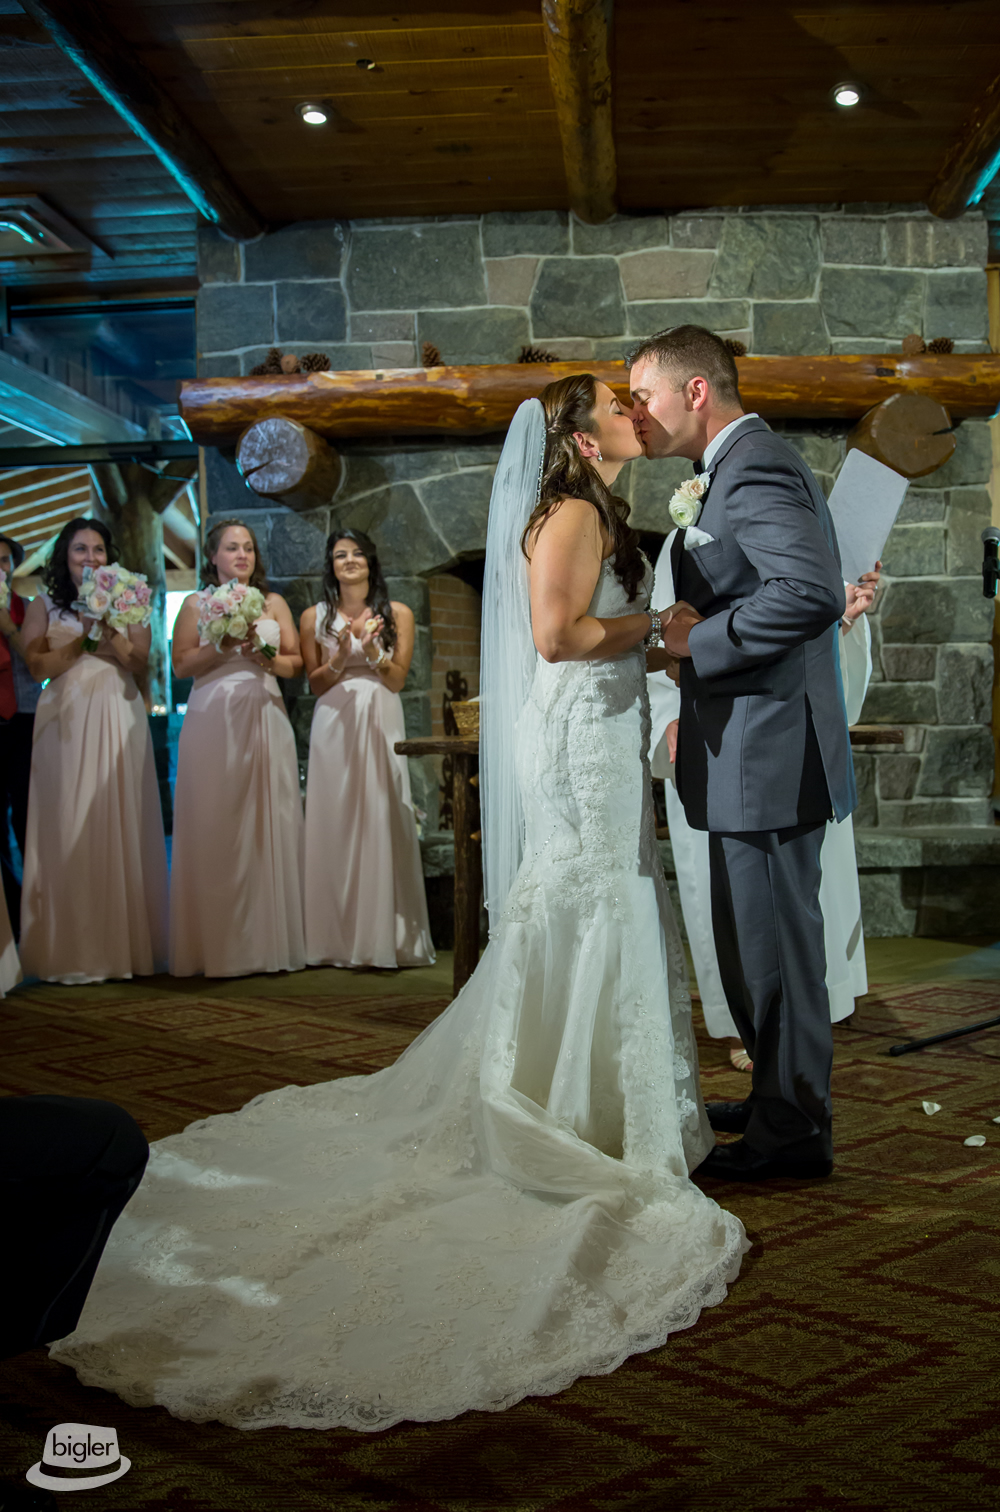 20150815_-_20b_-_Whiteface_Lodge_Wedding